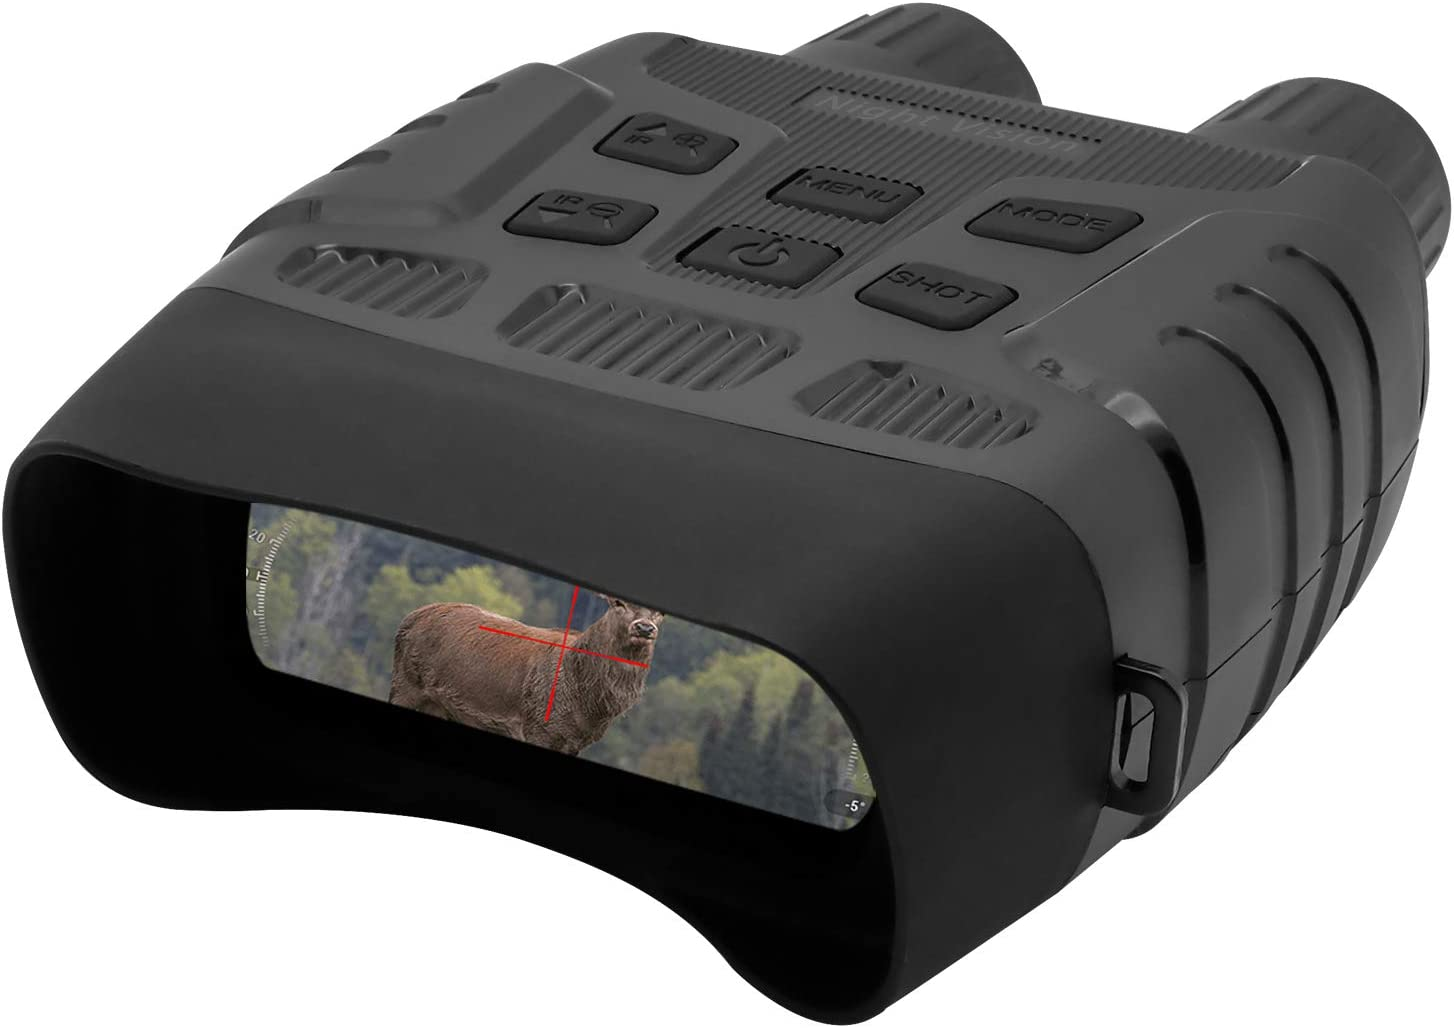 ZIMOCE Night Vision Goggles, Binoculars with Night Vision IR Sensor Portable can Take HD Image & Record 960P Videos from 984ft in 100% Darkness Waterproof Drop Resistant (32GB TF Card Included)